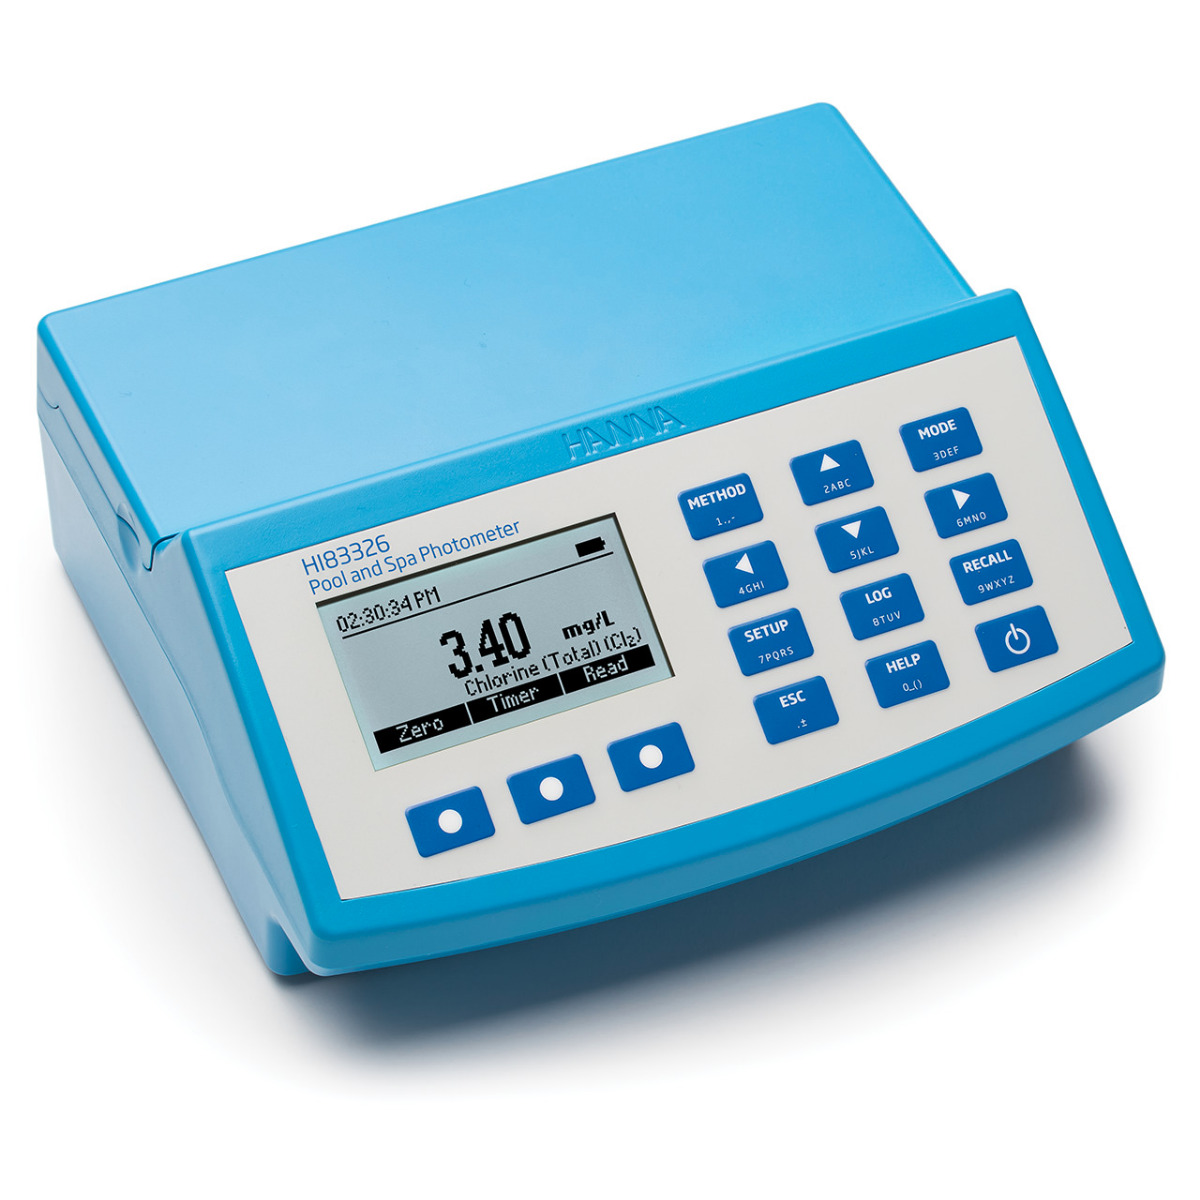 Pool and Spa Photometer - HI83326